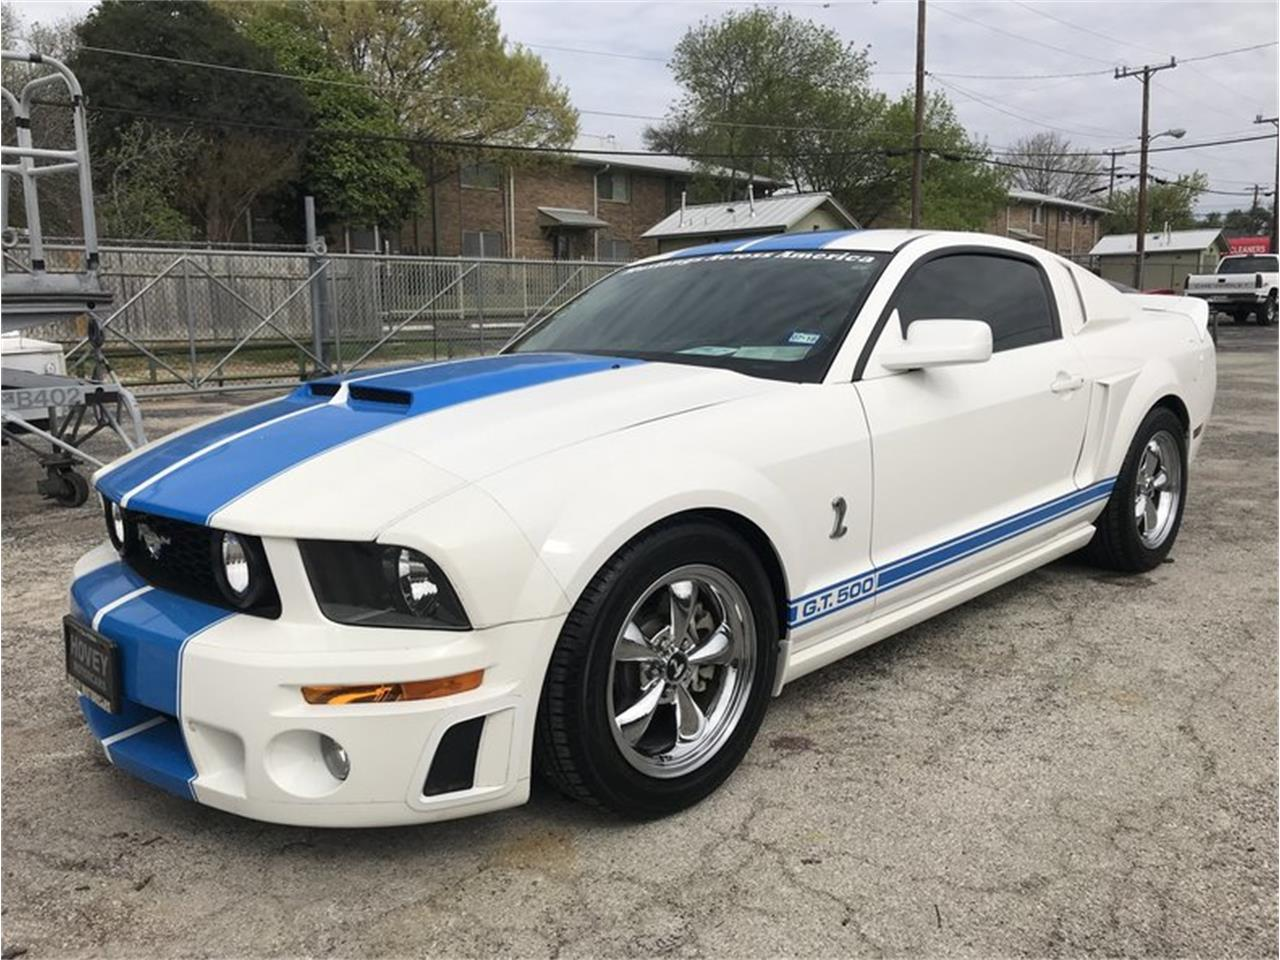 2006 Ford Mustang Gt For Sale Classiccars Com Cc 1077703